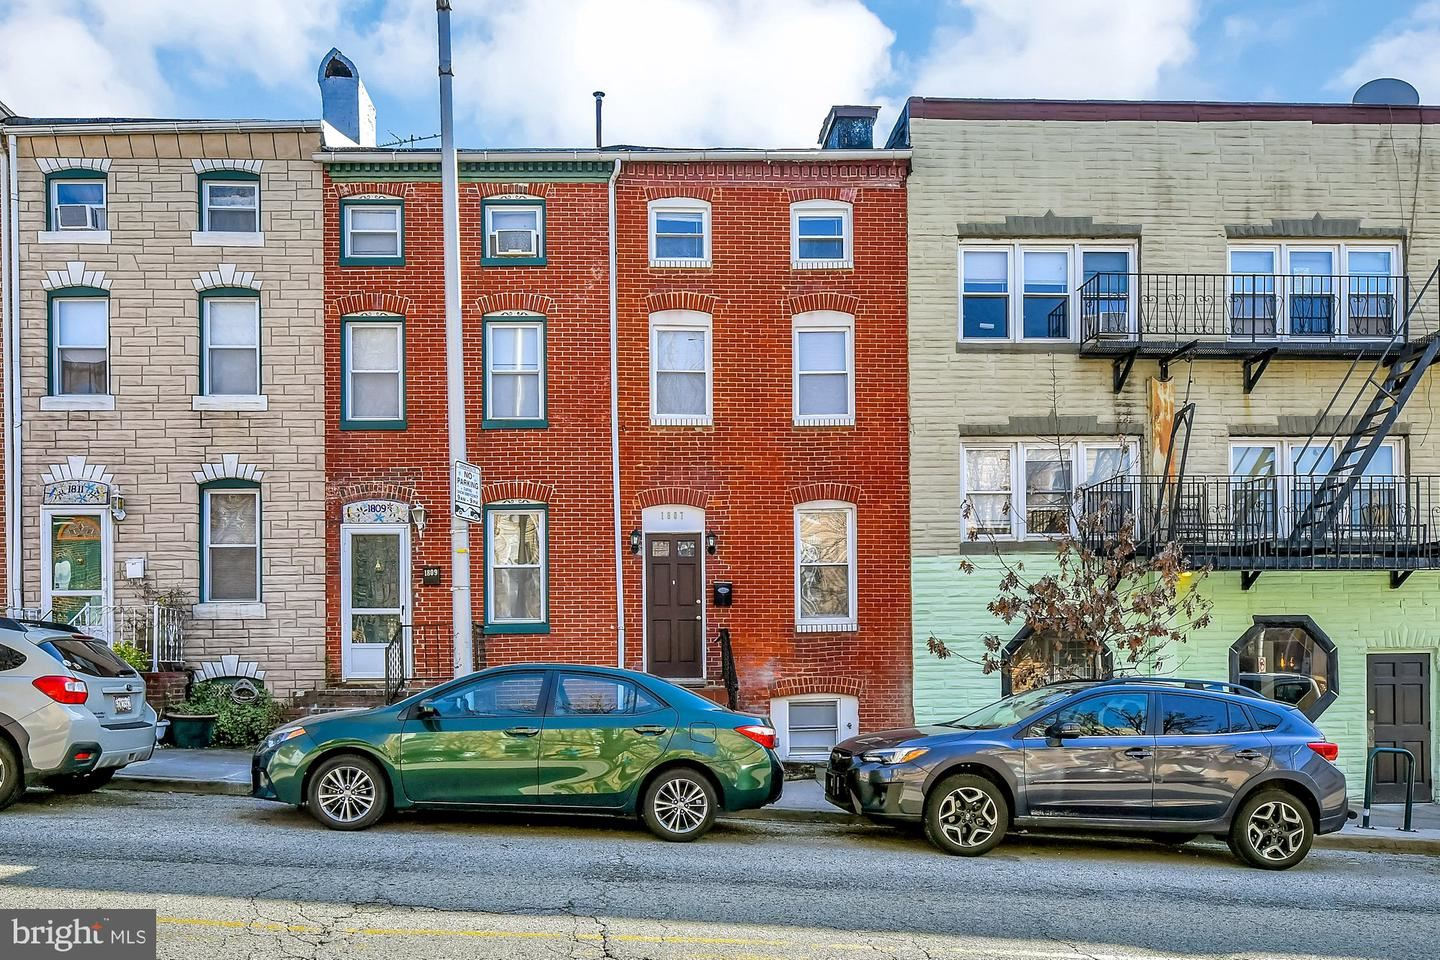 1807 E LOMBARD ST, Baltimore, MD 21231 - MLS#: MDBA542304